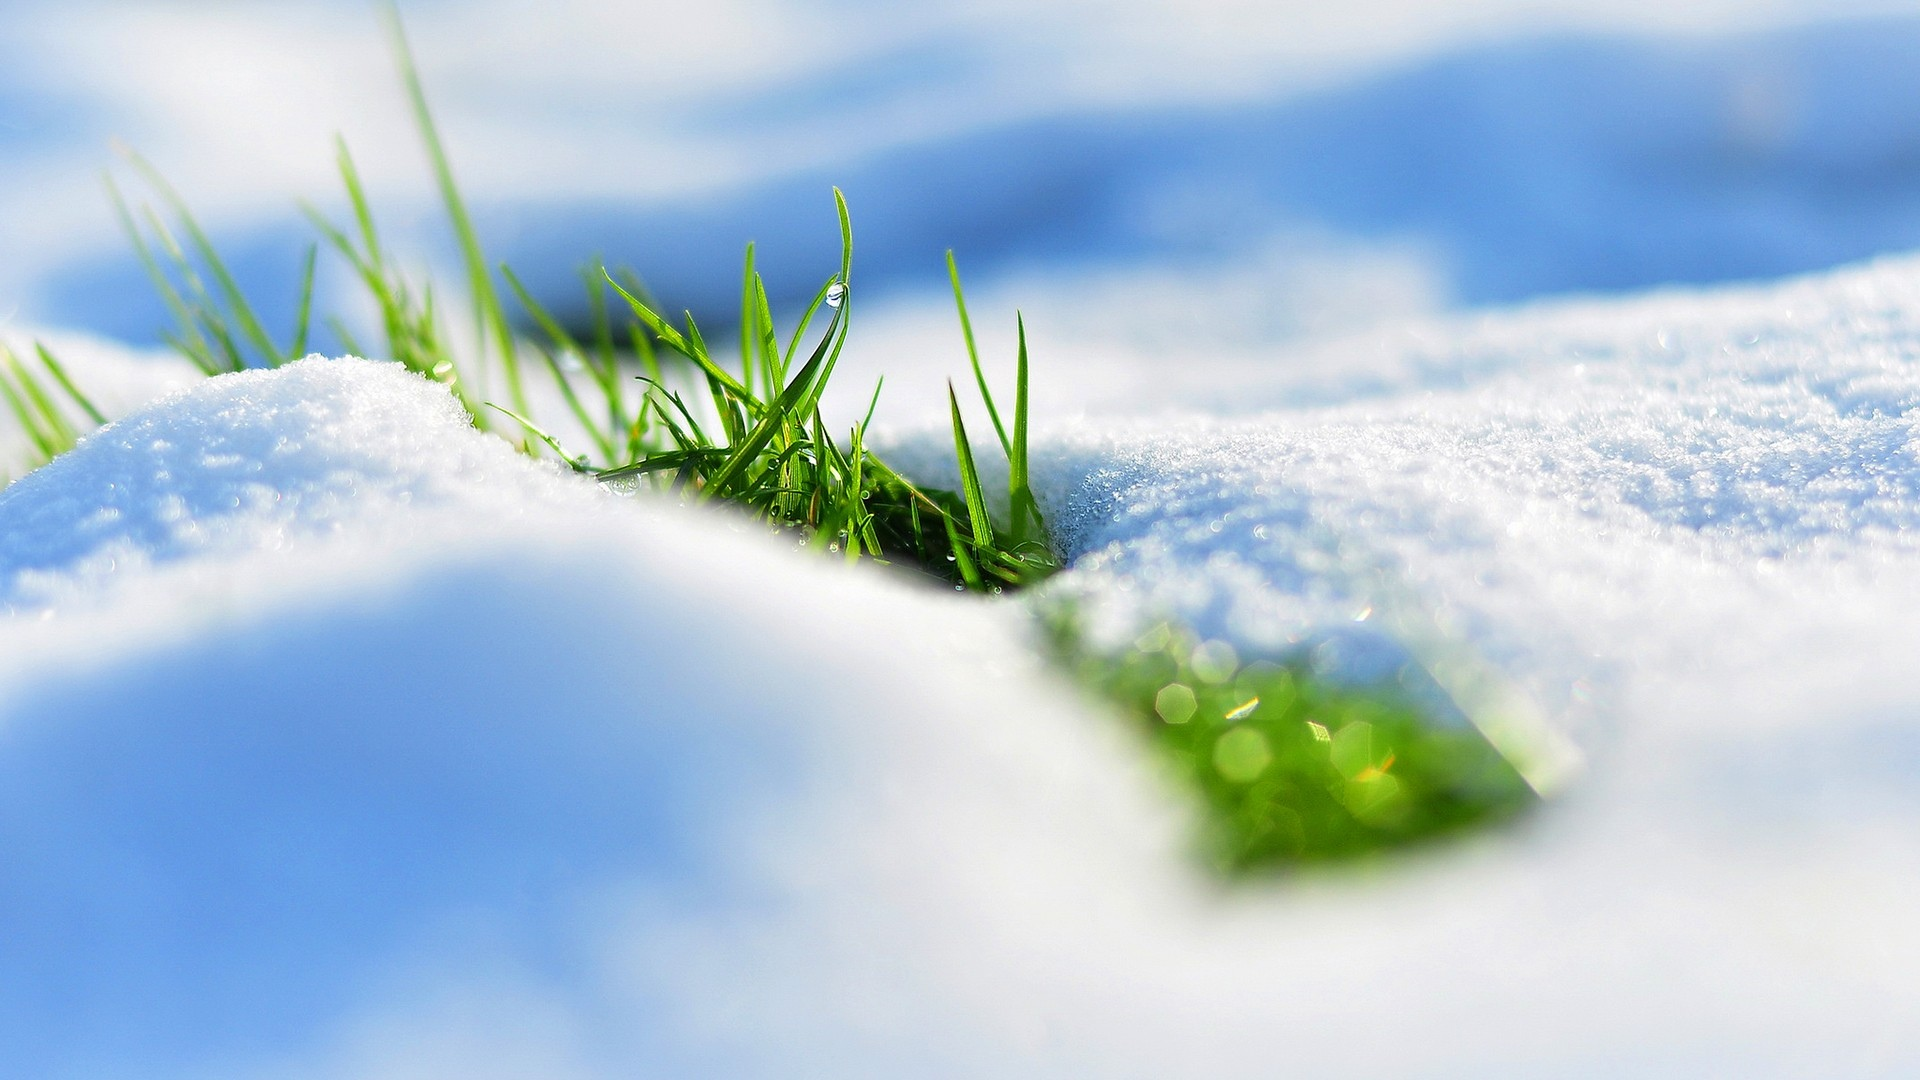 Download Wallpaper 1920x1080 Spring Snow Grass Reflections Full